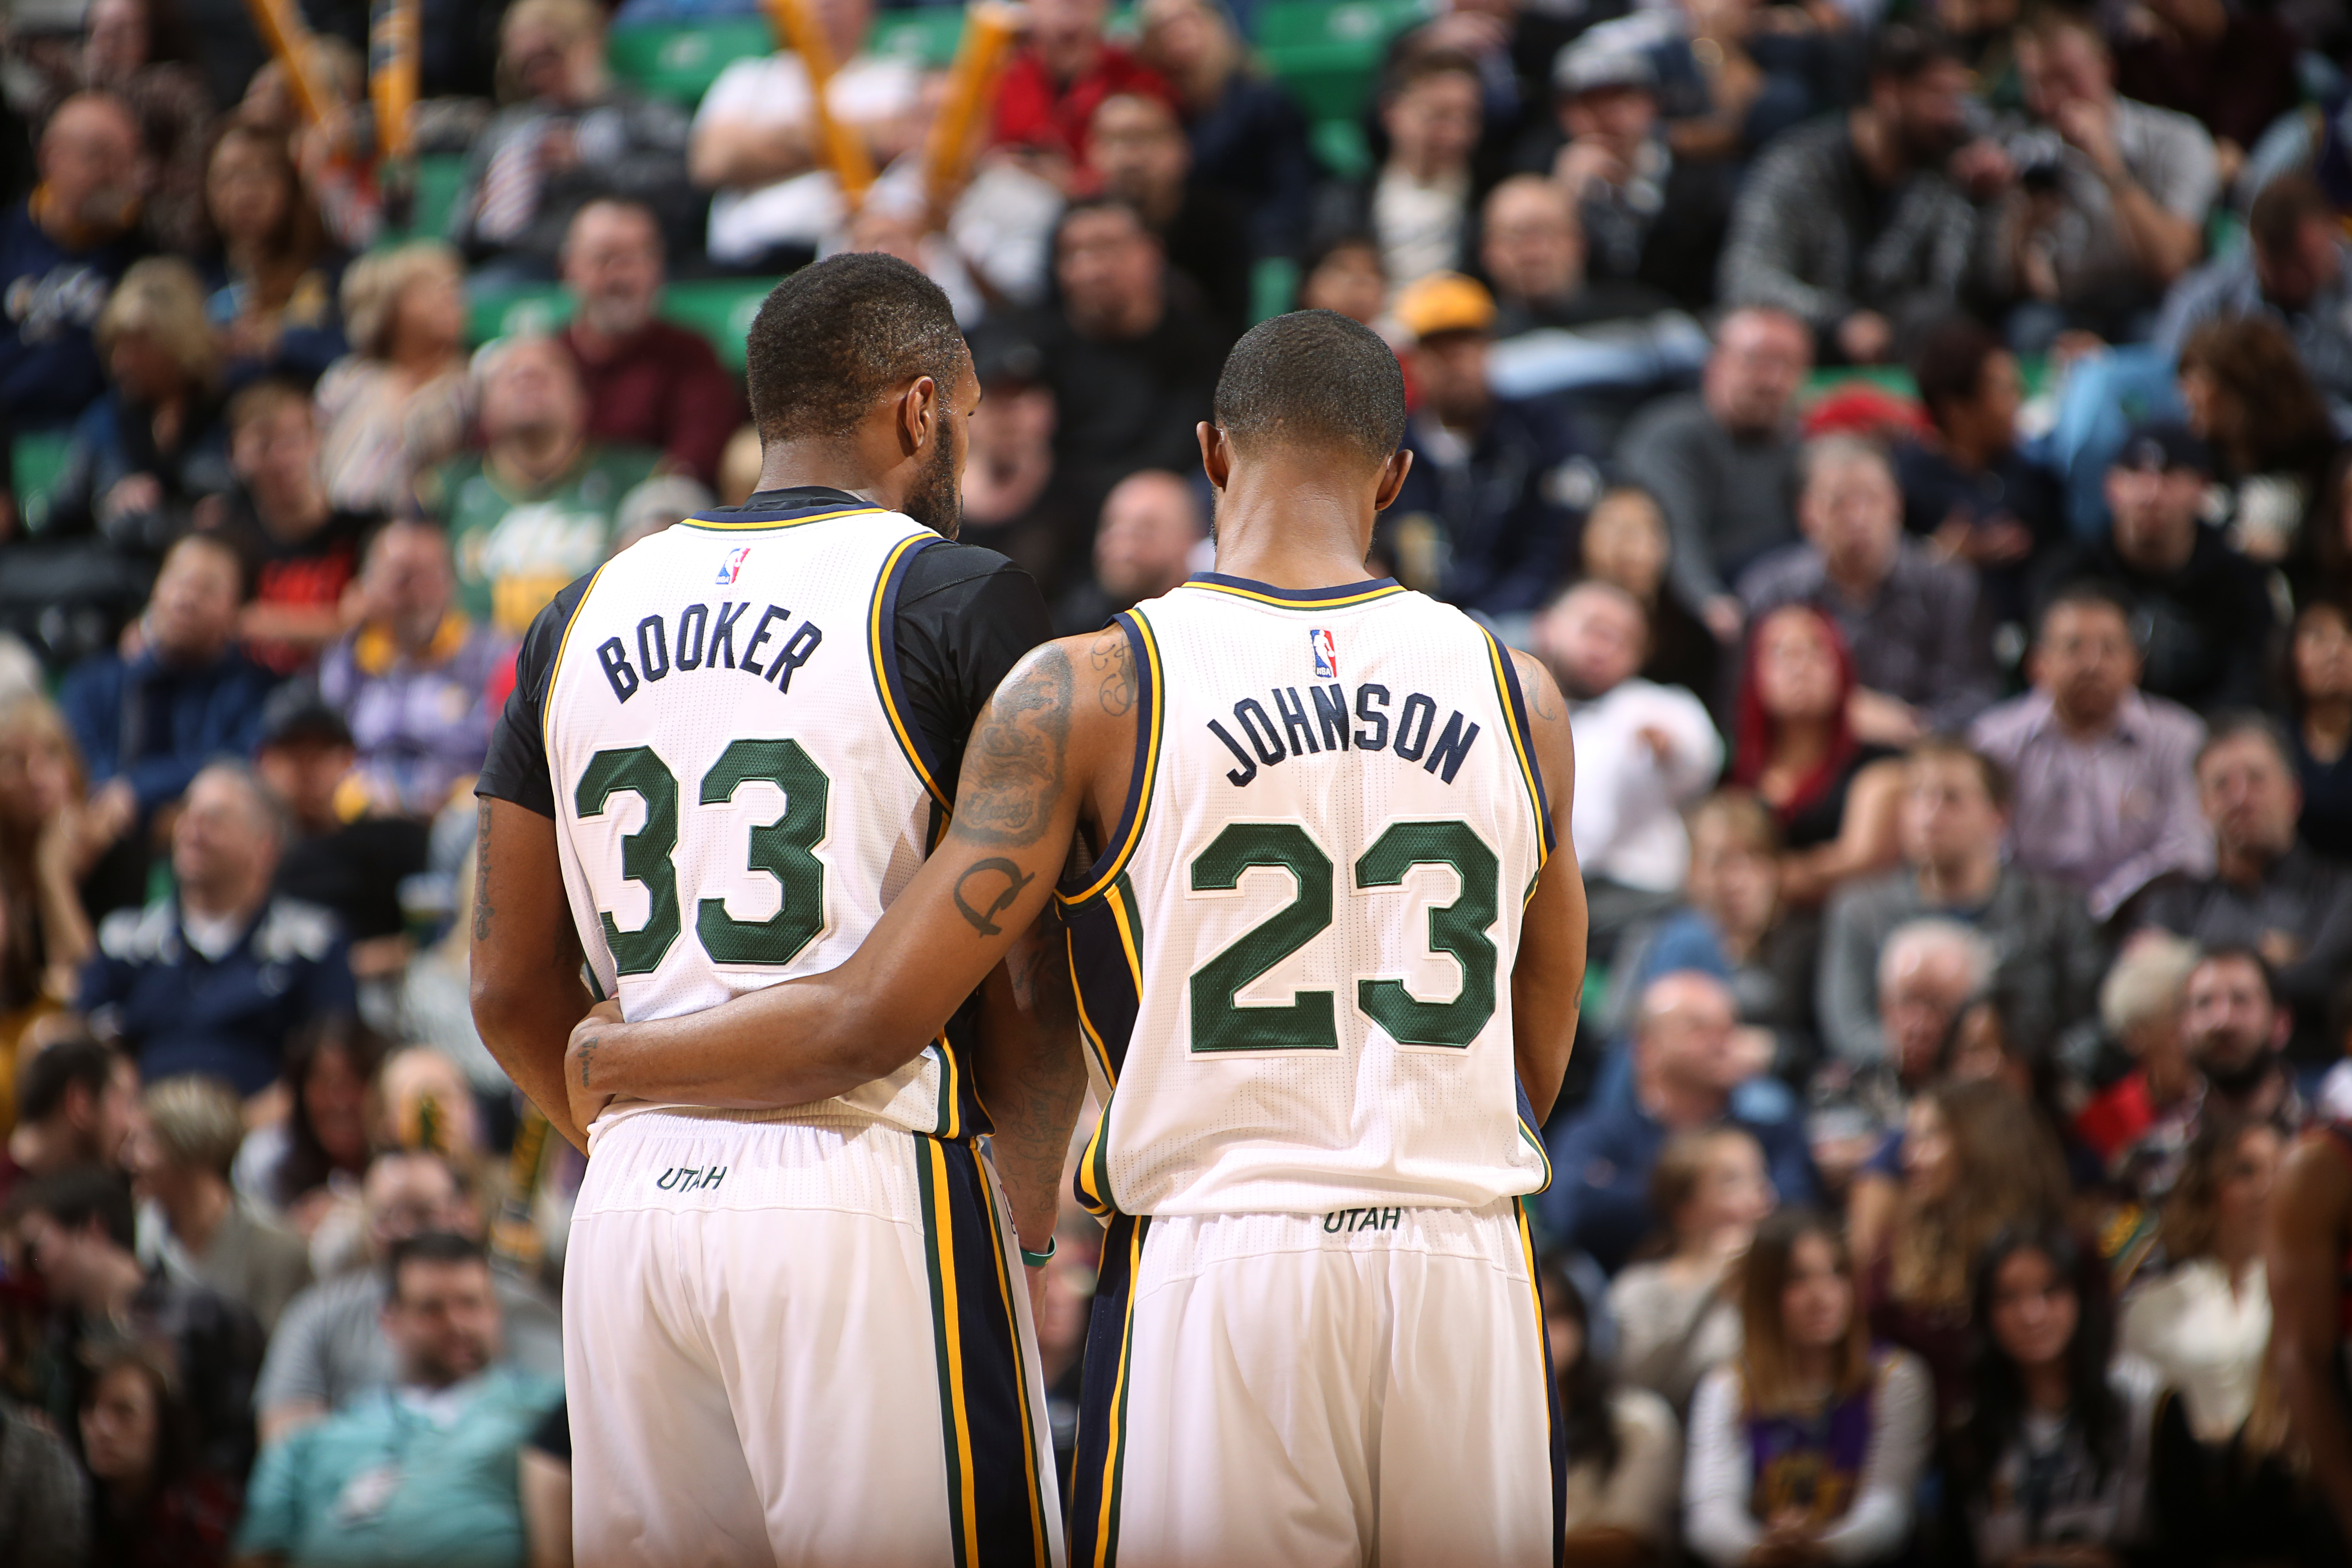 SALT LAKE CITY, UT - DECEMBER 31:  Trevor Booker #33 of the Utah Jazz and Chris Johnson #23 of the Utah Jazz during the game against the Portland Trail Blazers on December 31, 2015 at vivint.SmartHome Arena in Salt Lake City, Utah. (Photo by Melissa Majch